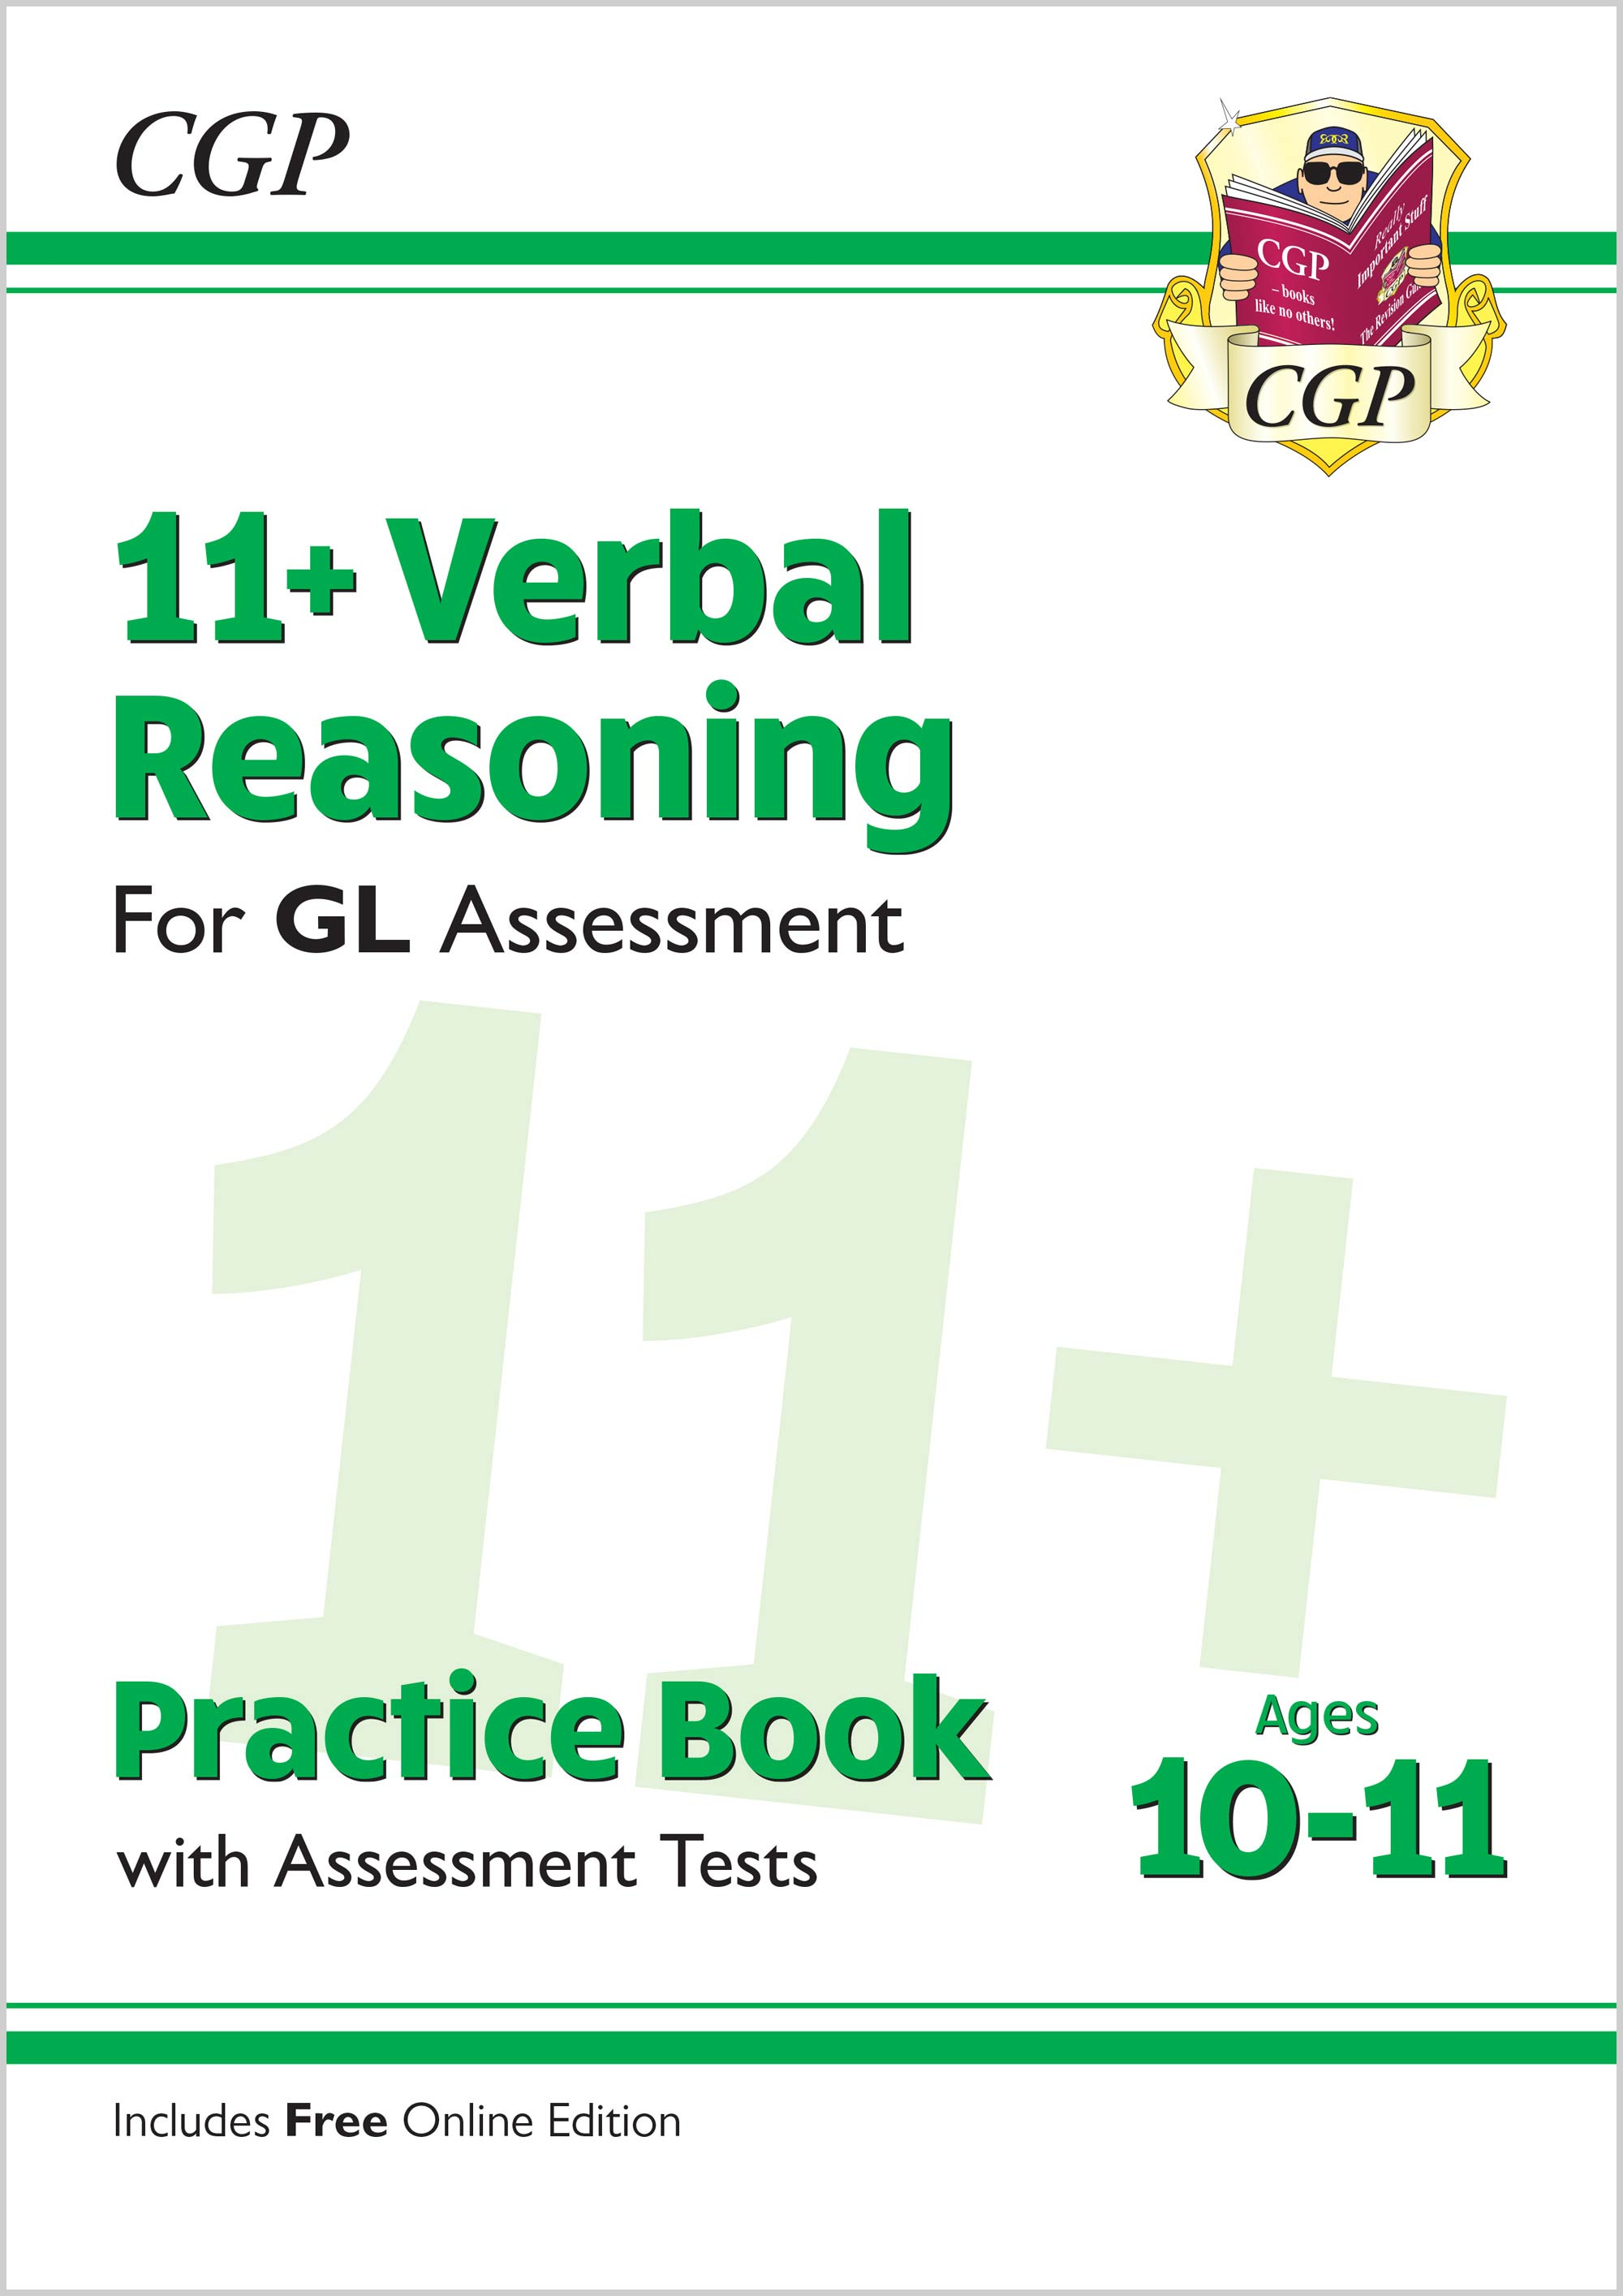 V6QE2 - 11+ GL Verbal Reasoning Practice Book & Assessment Tests - Ages 10-11 (with Online Edition)